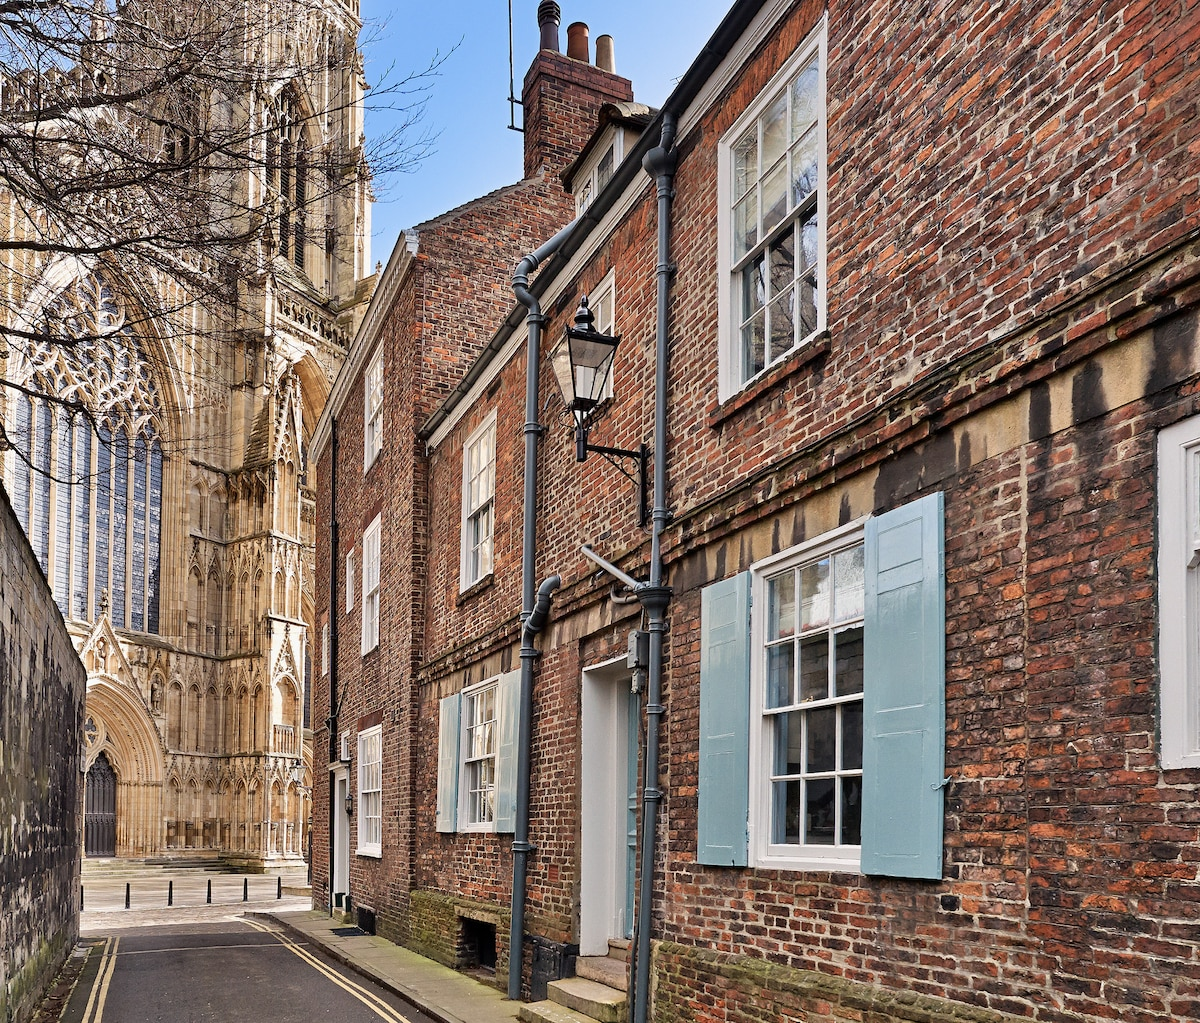 Fabulous house next to York Minster